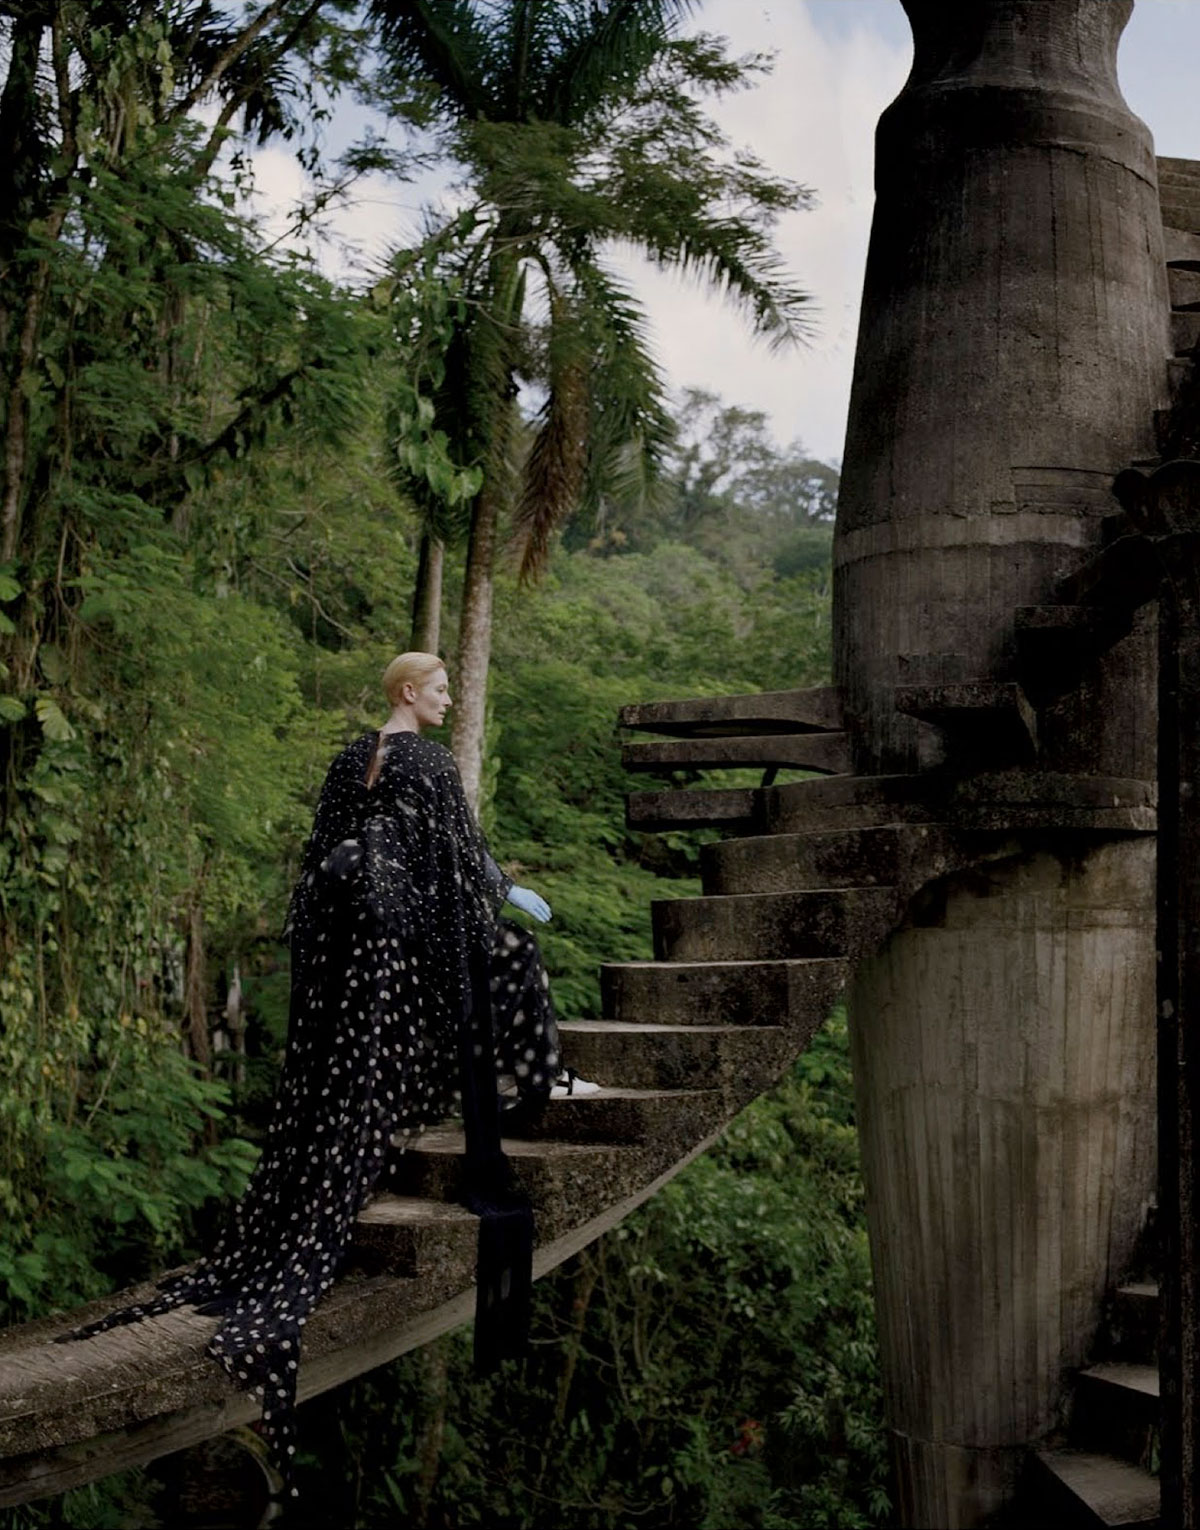 'Stranger Than Paradise' editorial. Tilda Swinton and Tim Walker for W Magazine | Yellowtrace.